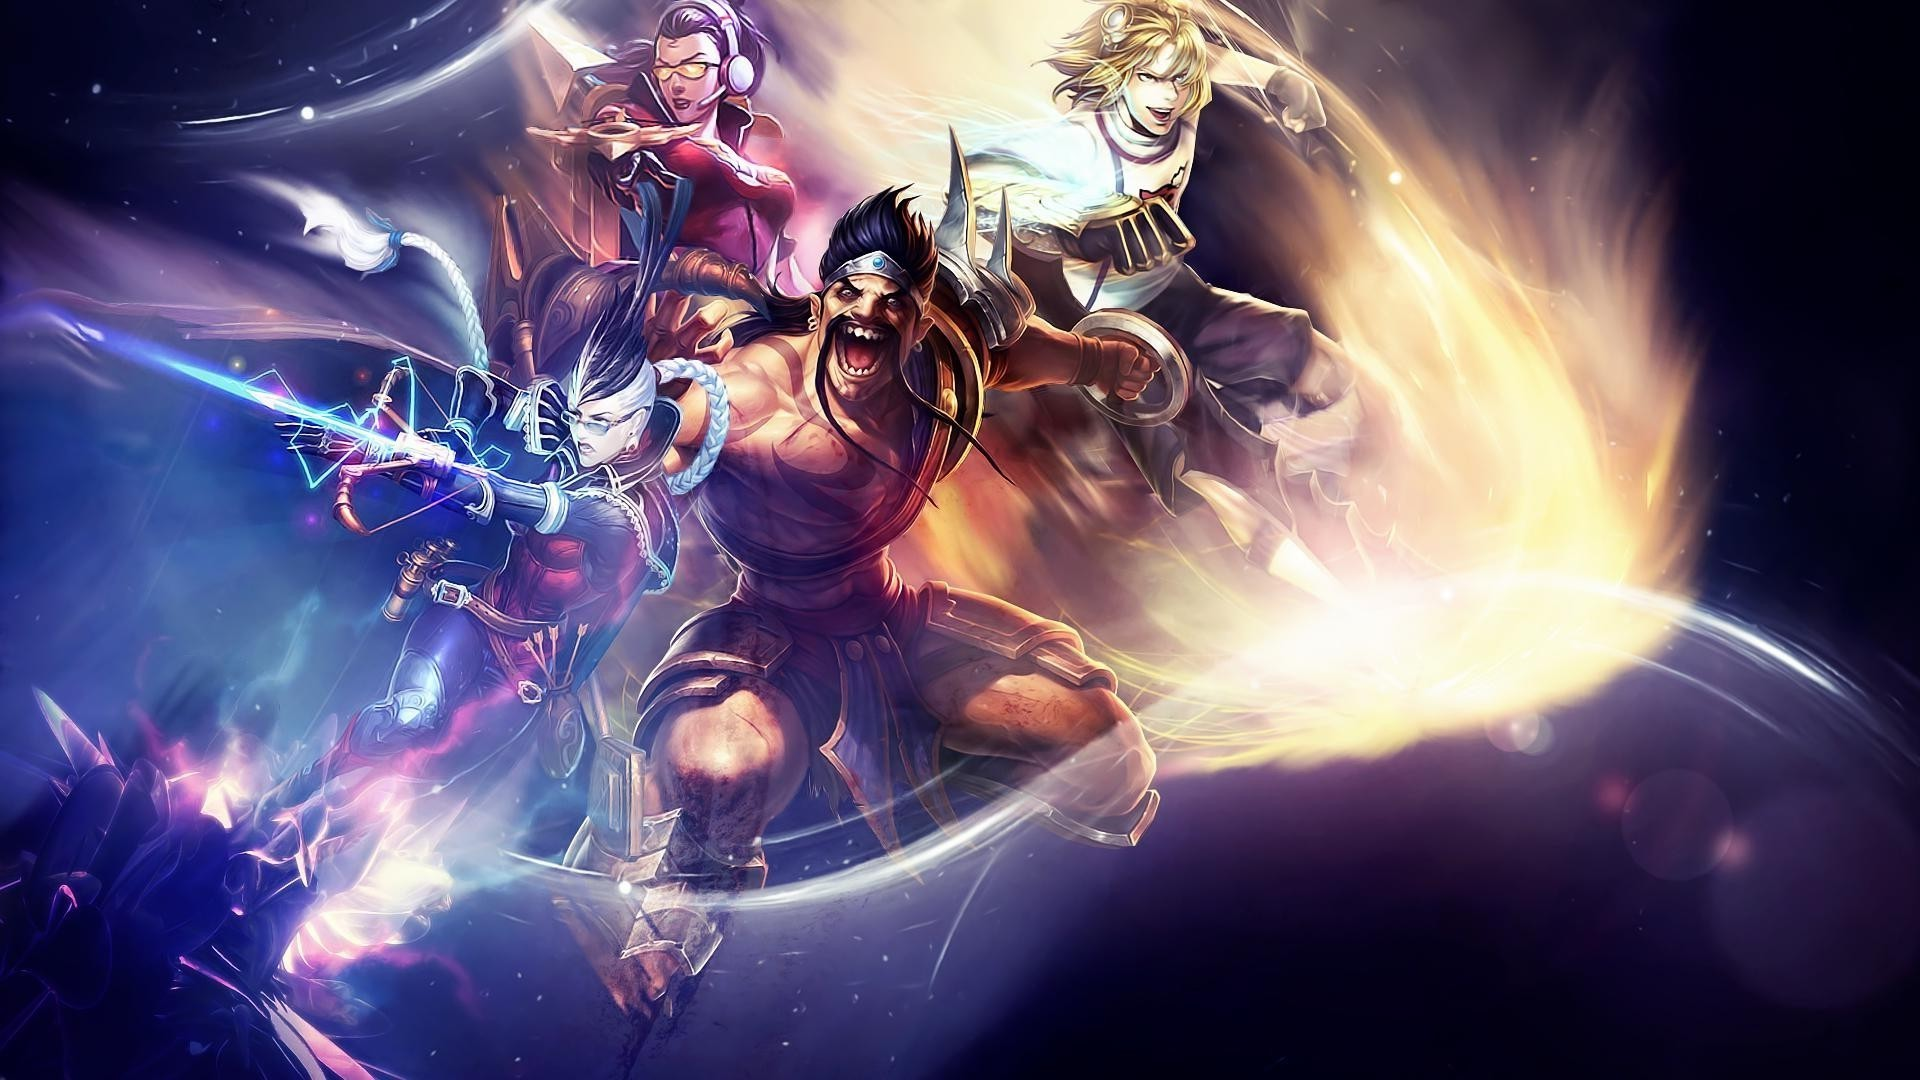 Dual Monitor Wallpaper League Of Legends: Twitch League Of Legends Wallpapers (80+ Background Pictures